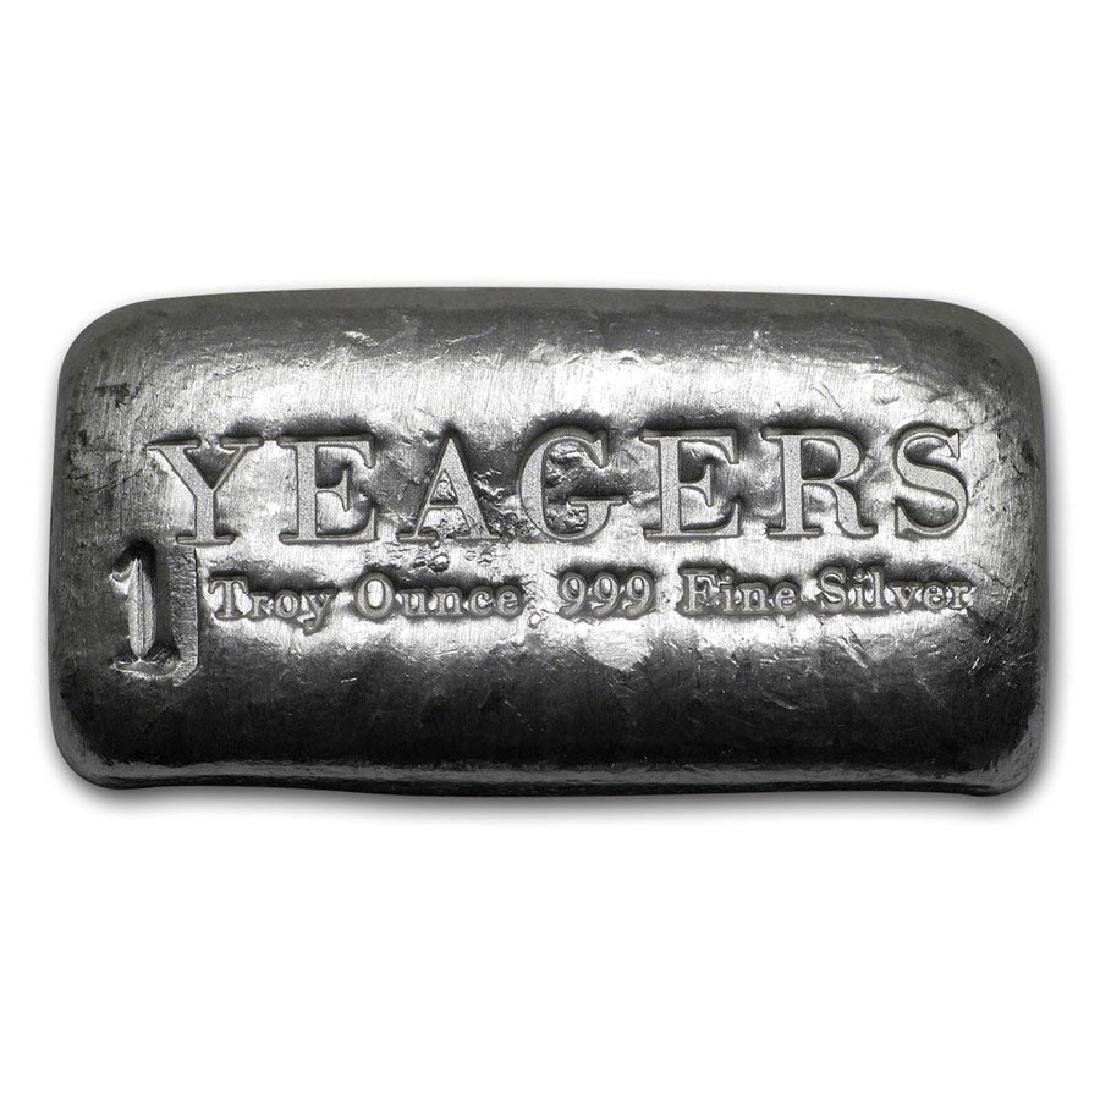 1 oz Silver Bar - Yeager Poured Silver (Bare Bones Bull